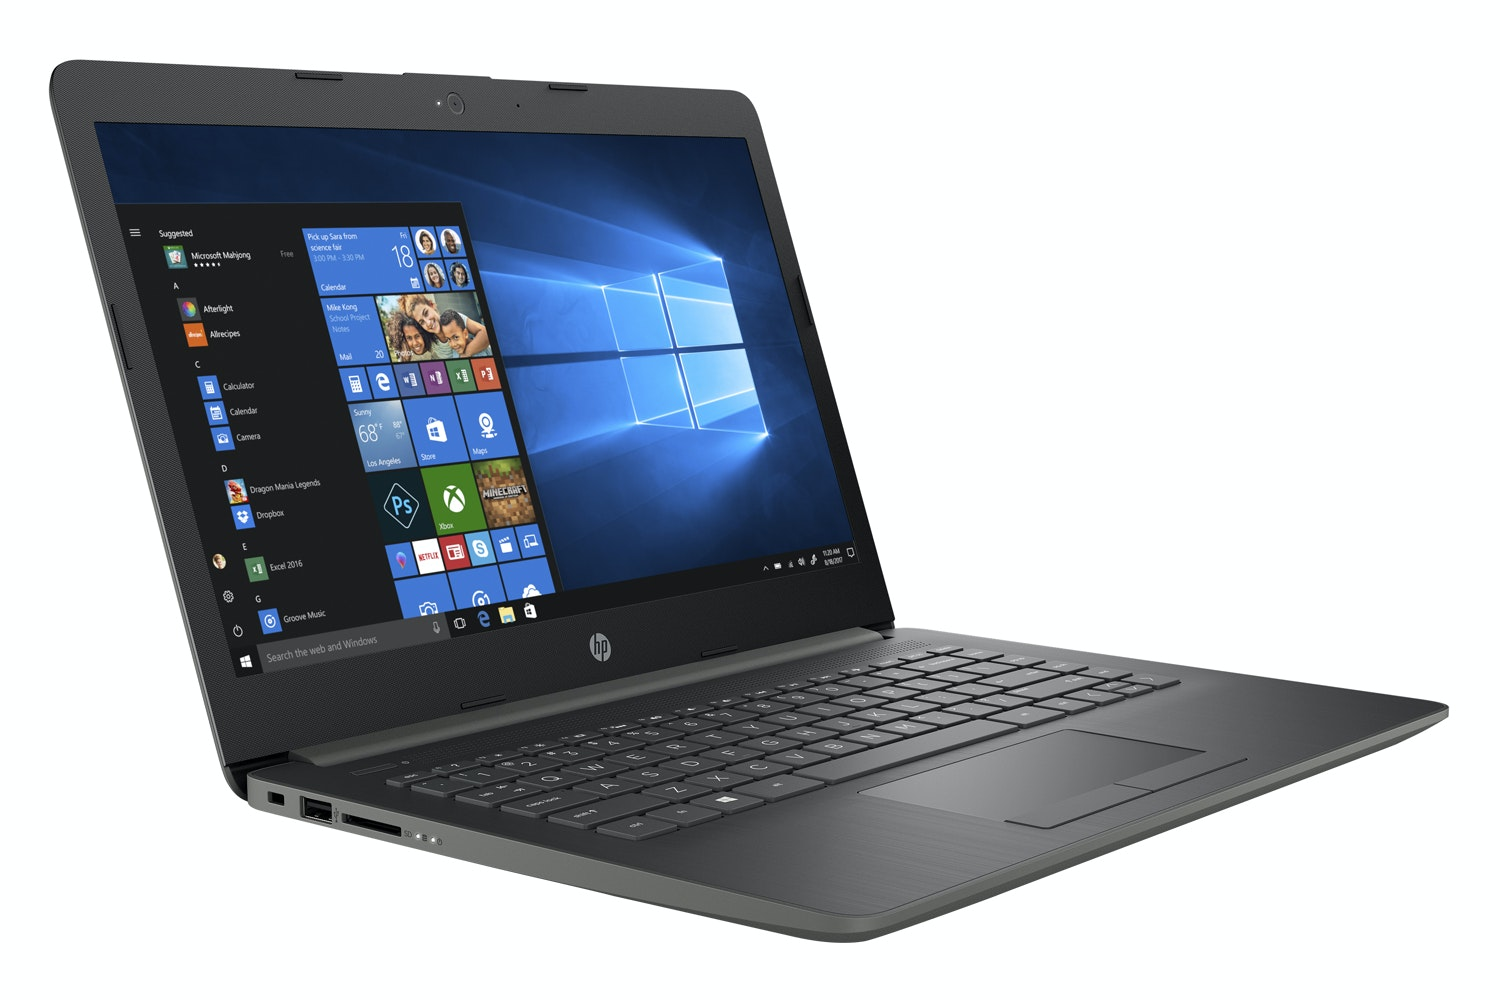 How to save pictures on hp computer